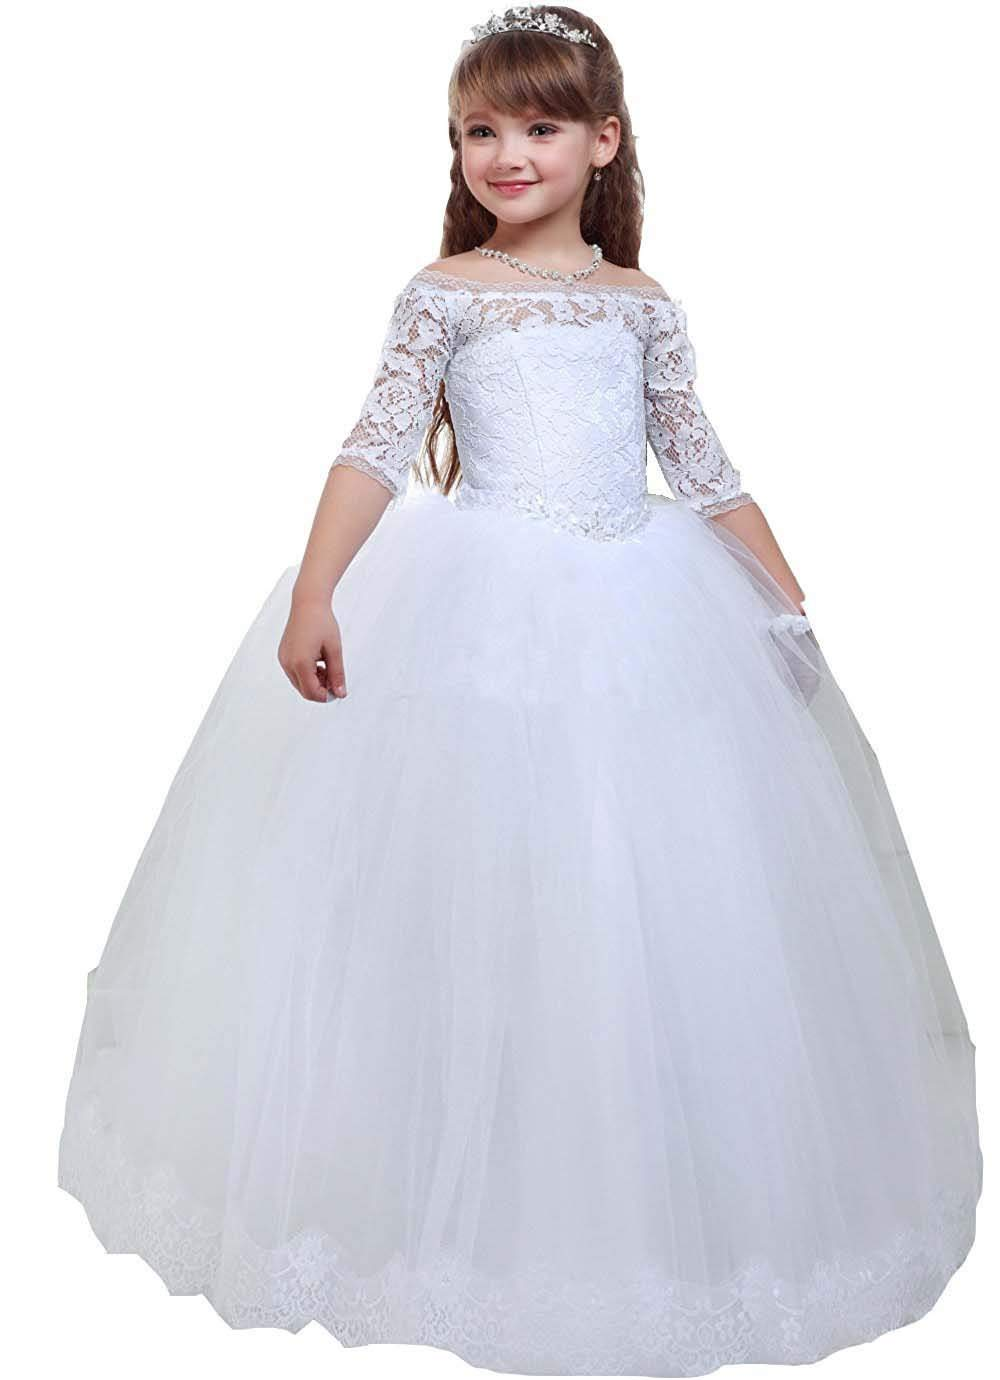 Pure White Lace Off Shoulder   Flower     Girl     Dresses   Ball Gown Puffy Tulle Half Sleeve First Communion   Dresses   Kids Birthday Gown